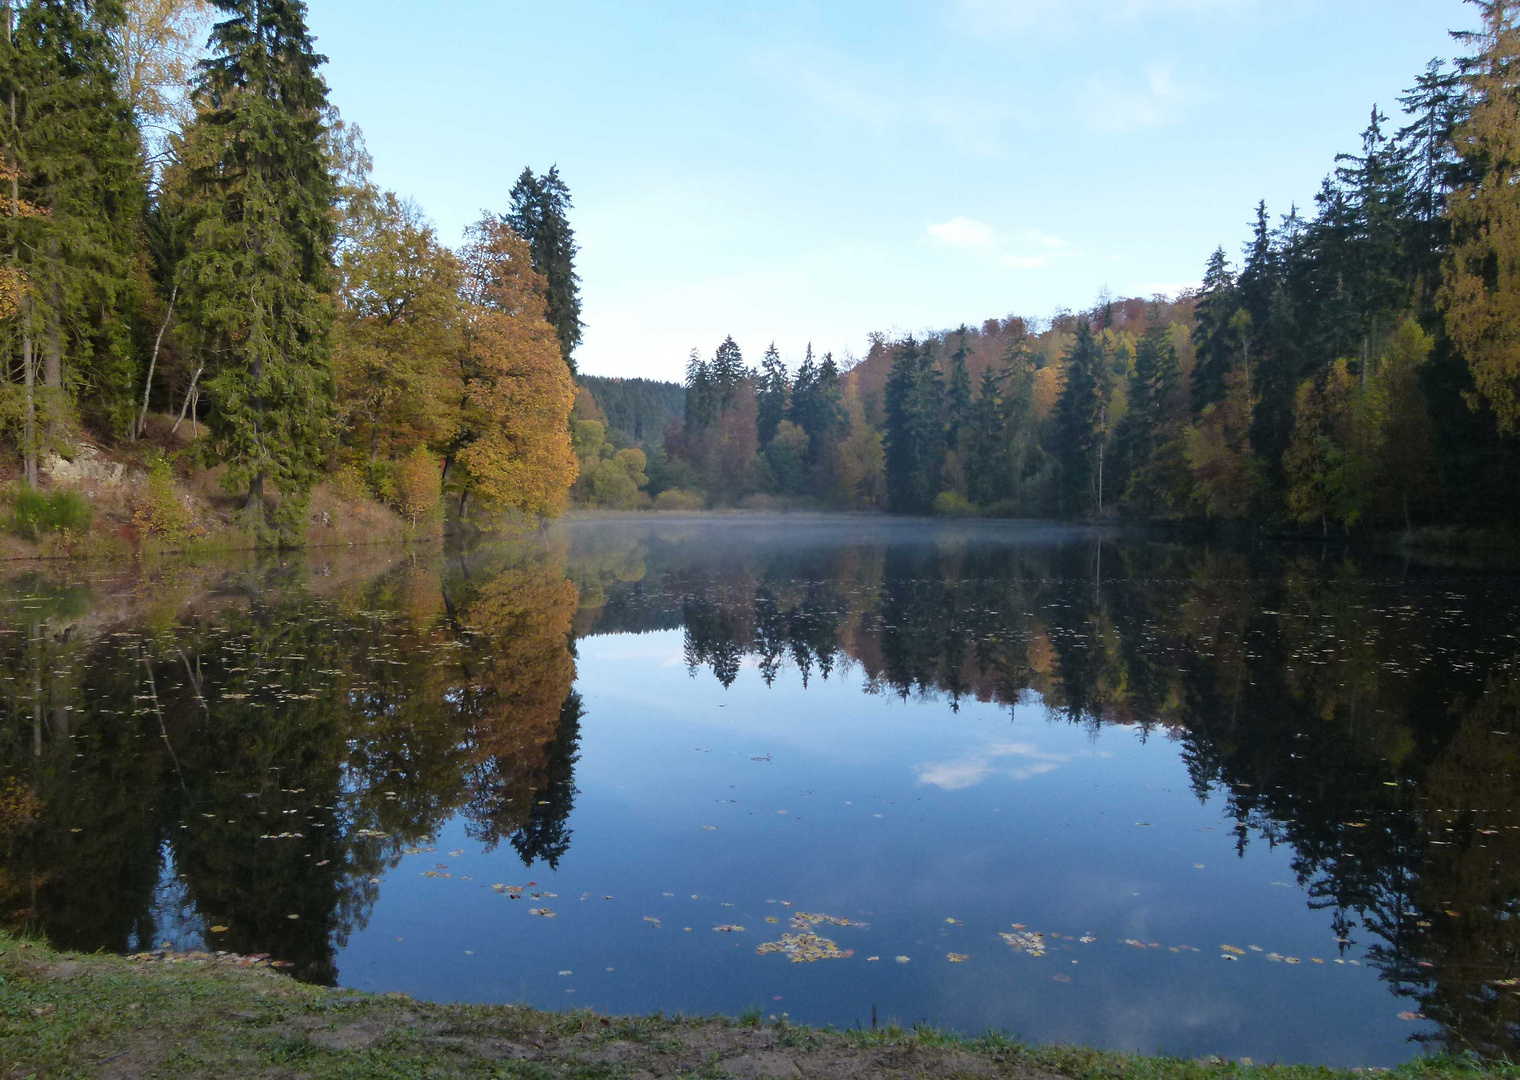 Morgen am See